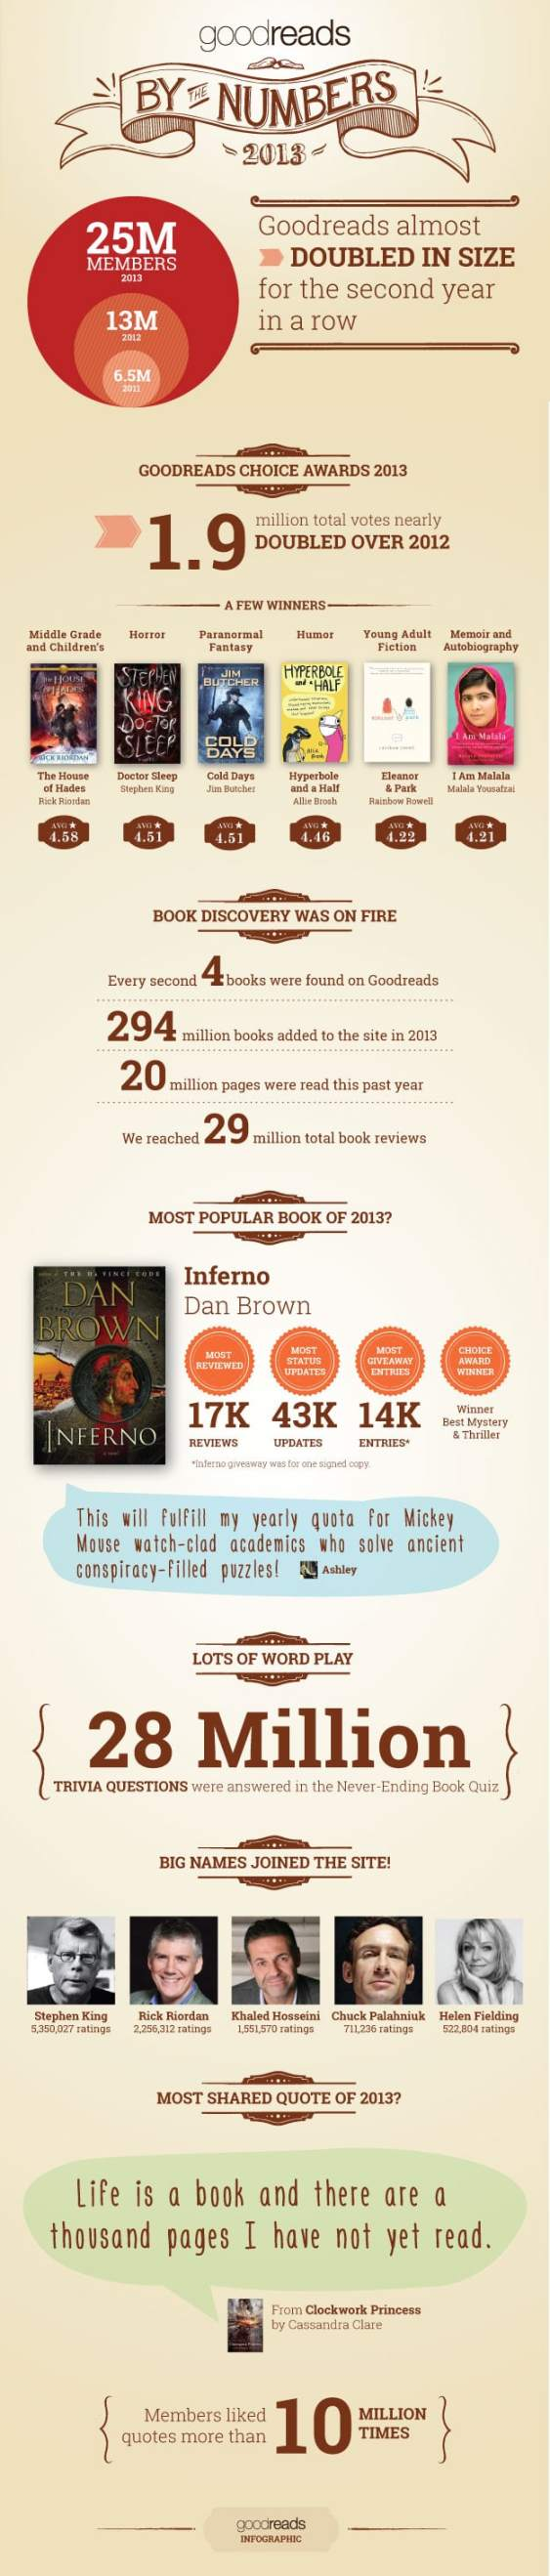 Infographic: Amazon's 4th Social Network is Growing By Leaps & Bounds AAP Amazon Infographic Social Media Social reading